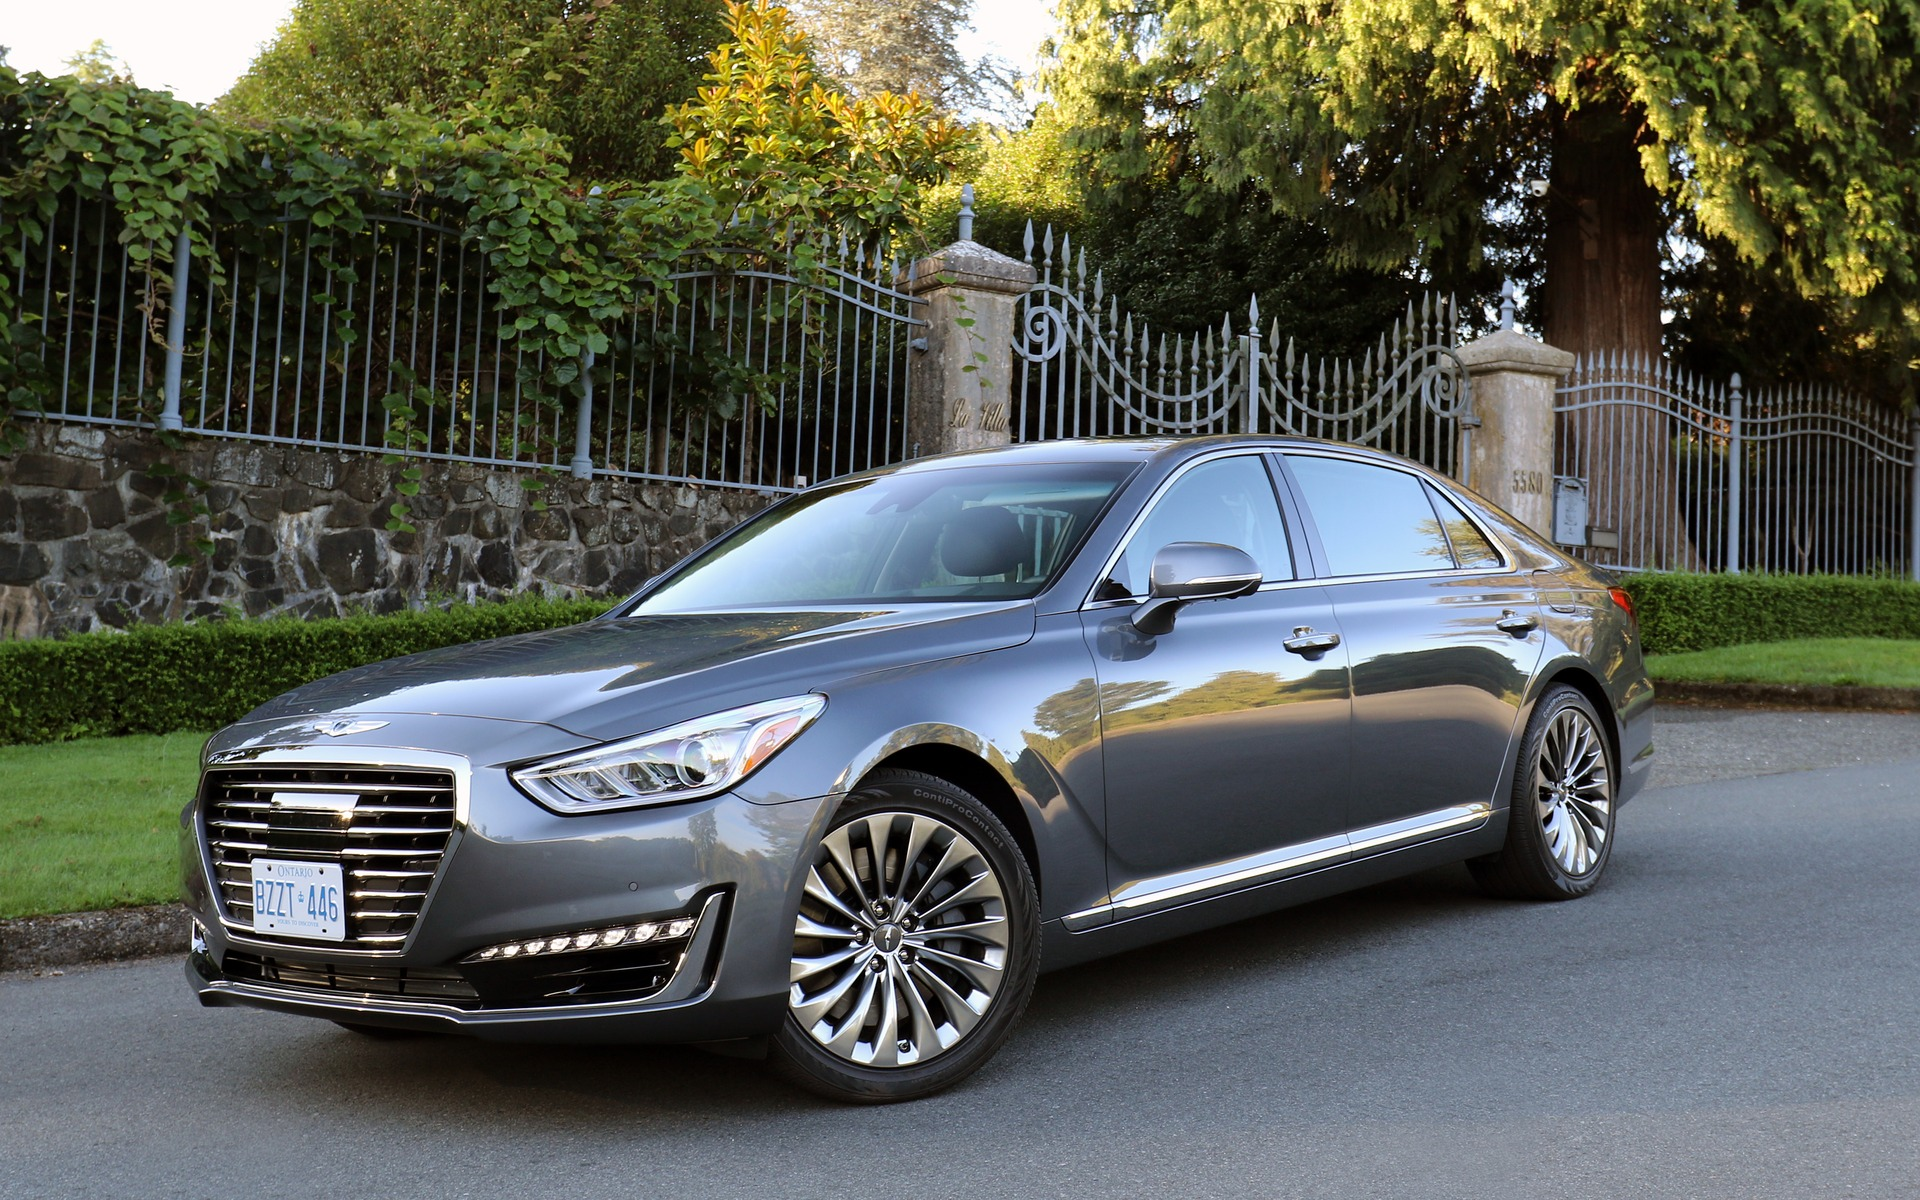 2017 genesis g90 a historic moment for hyundai the car guide. Black Bedroom Furniture Sets. Home Design Ideas